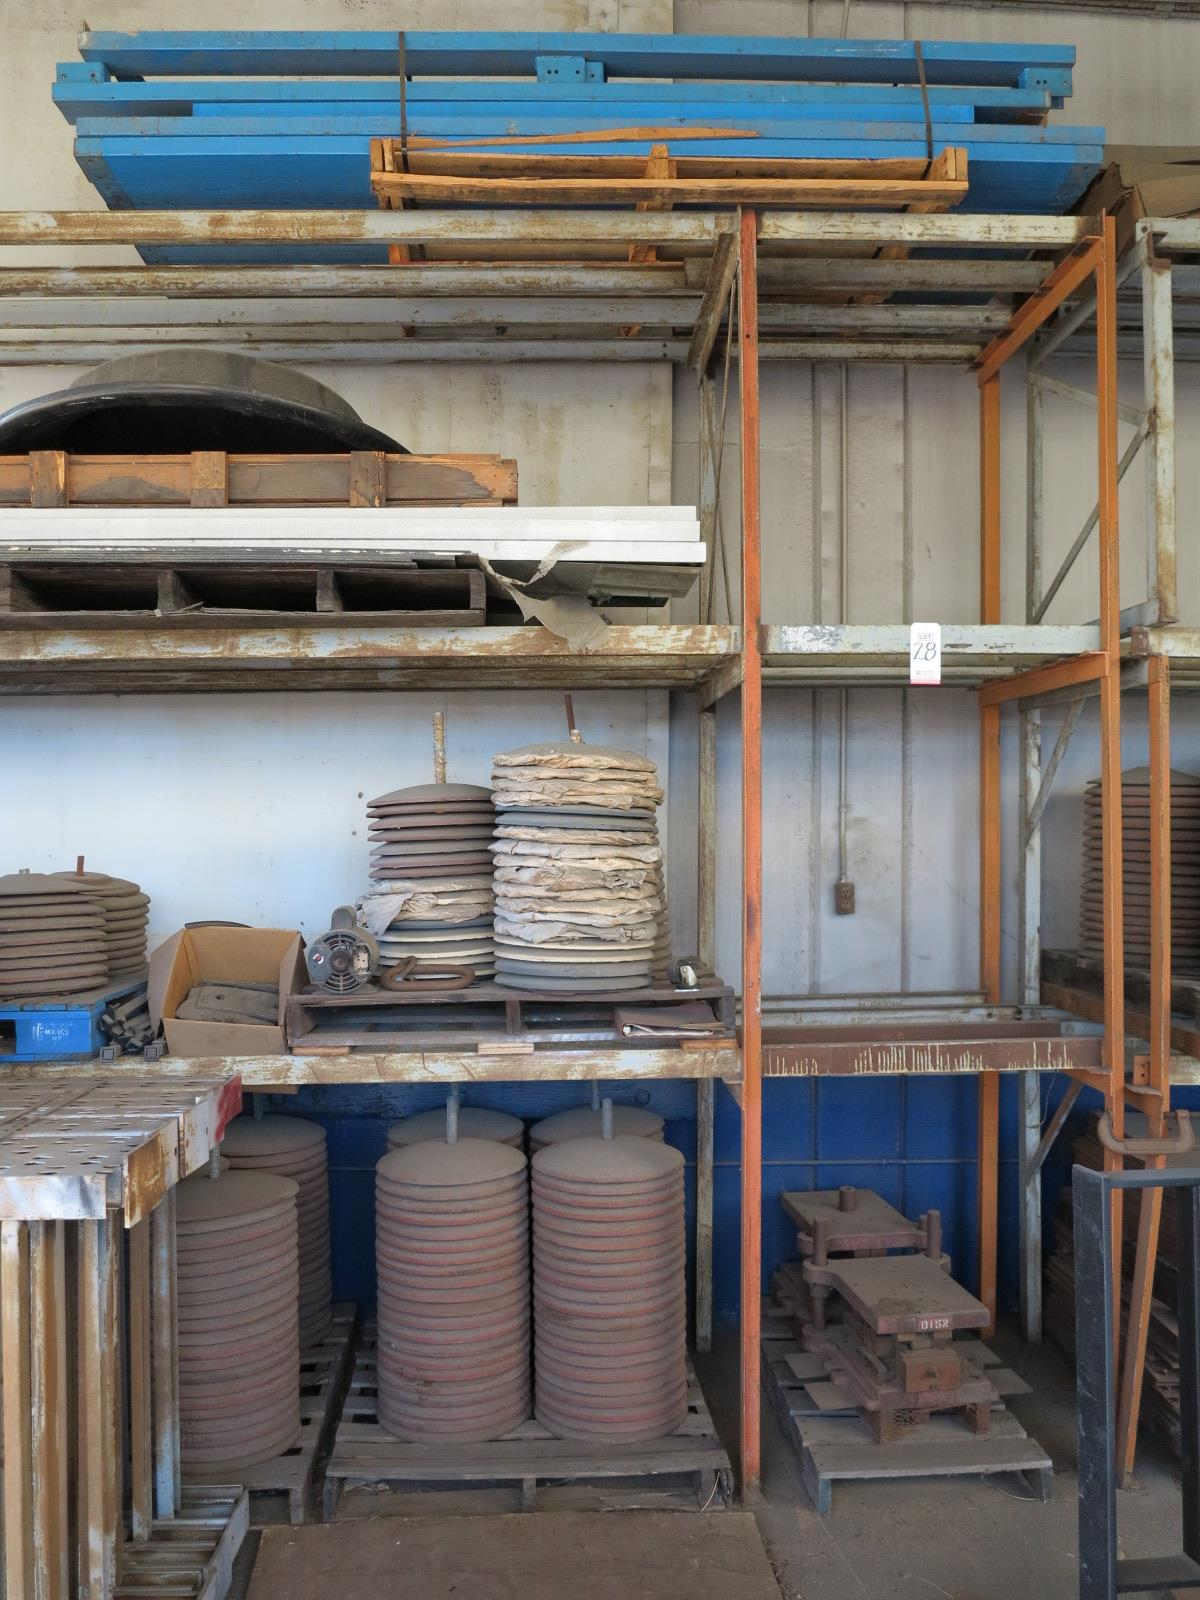 Lot 28 - LOT - APPROX. 32' X 11' HT STEEL RACKING W/ CONTENTS